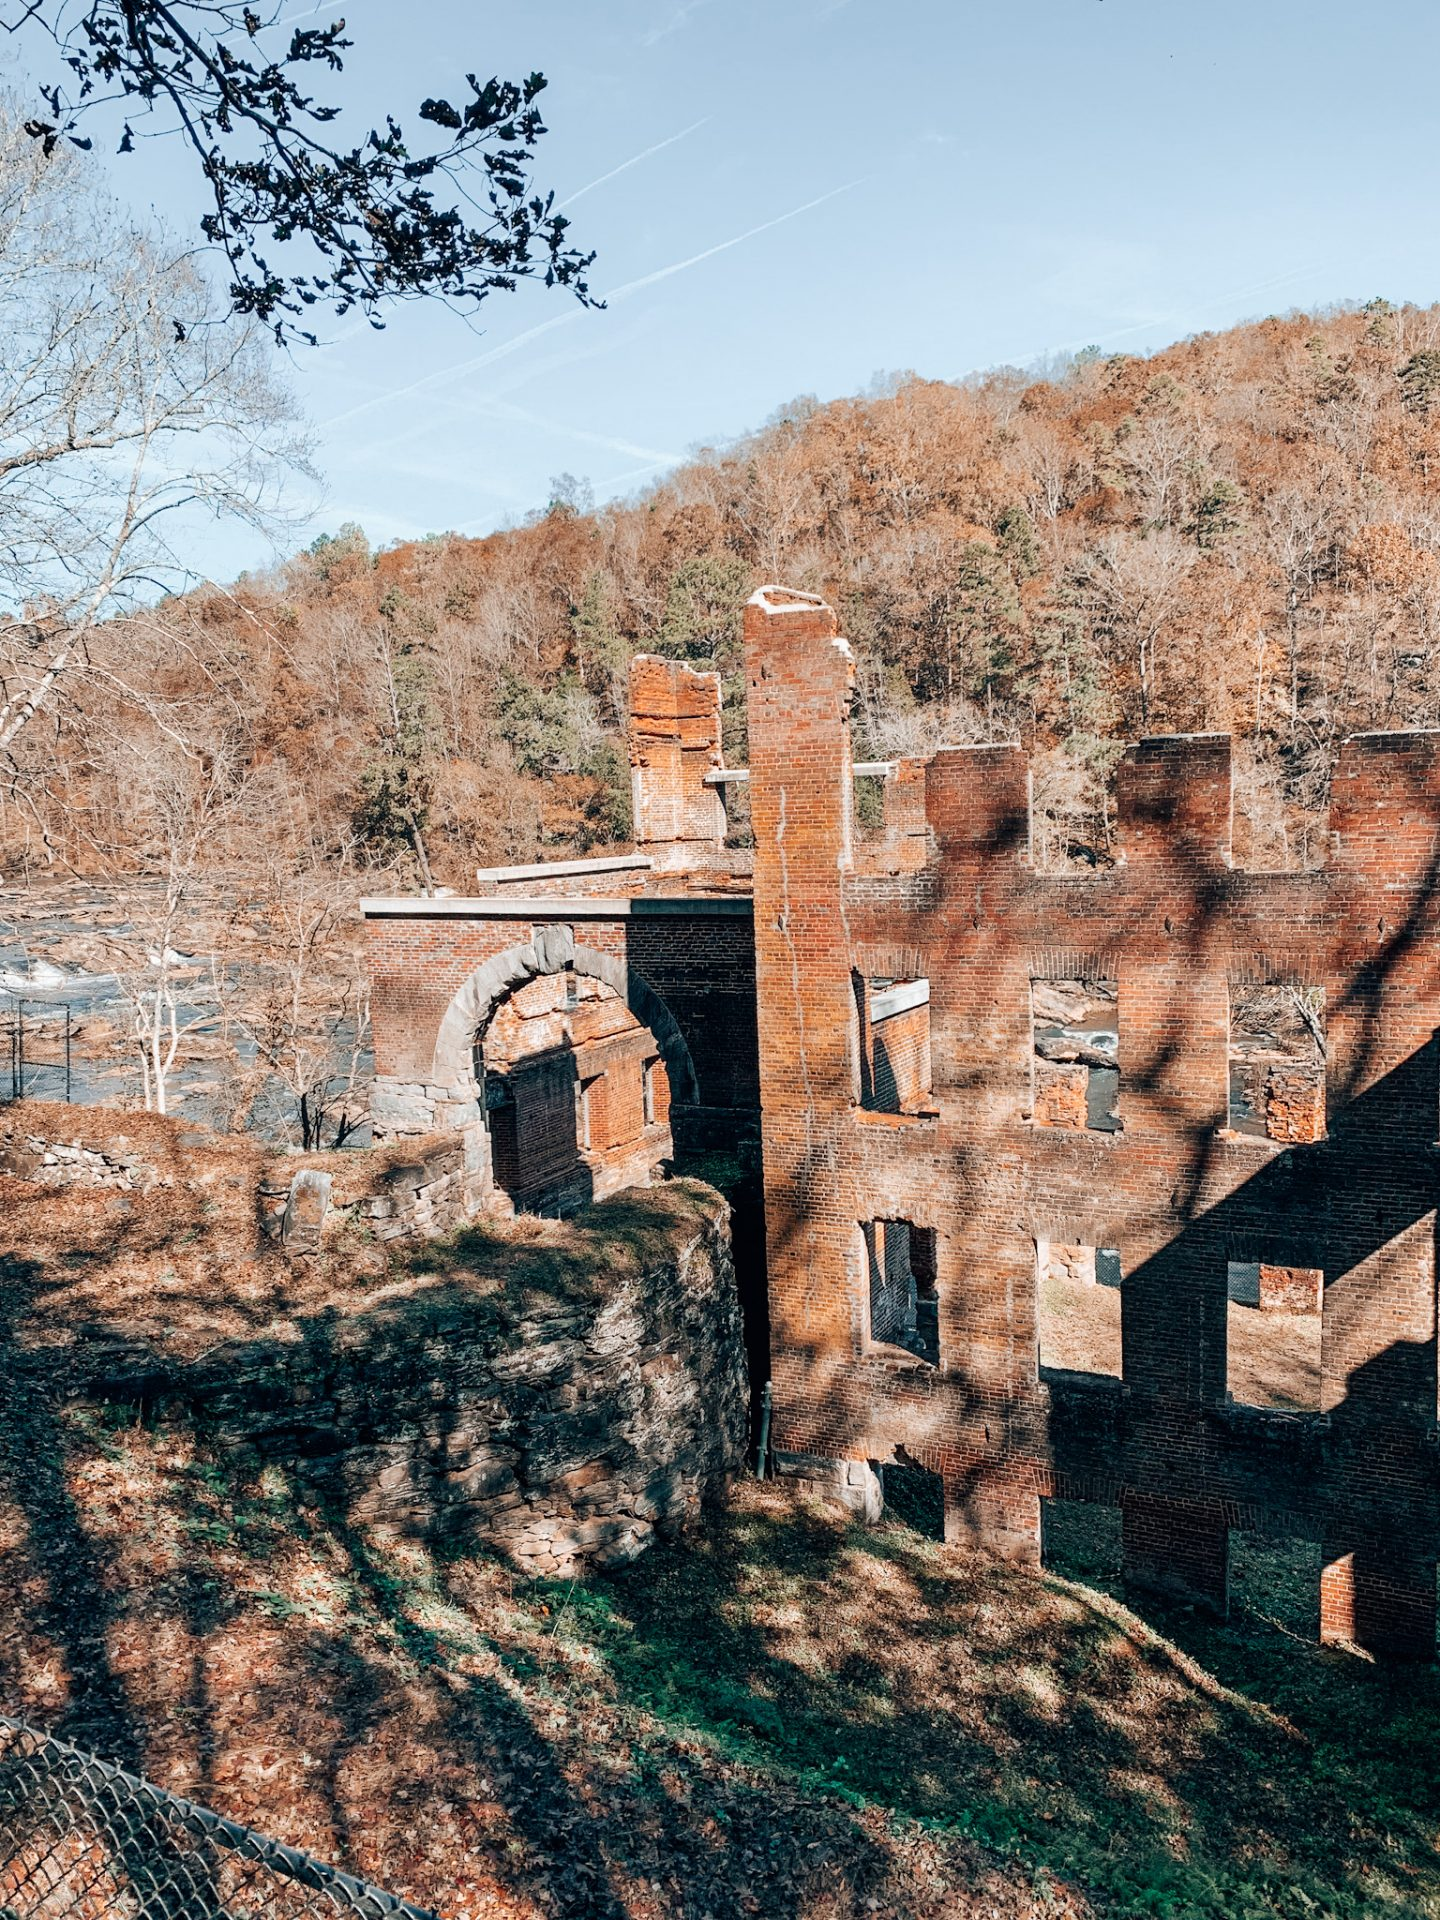 Paper mill at Sweetwater Creek in Georgia